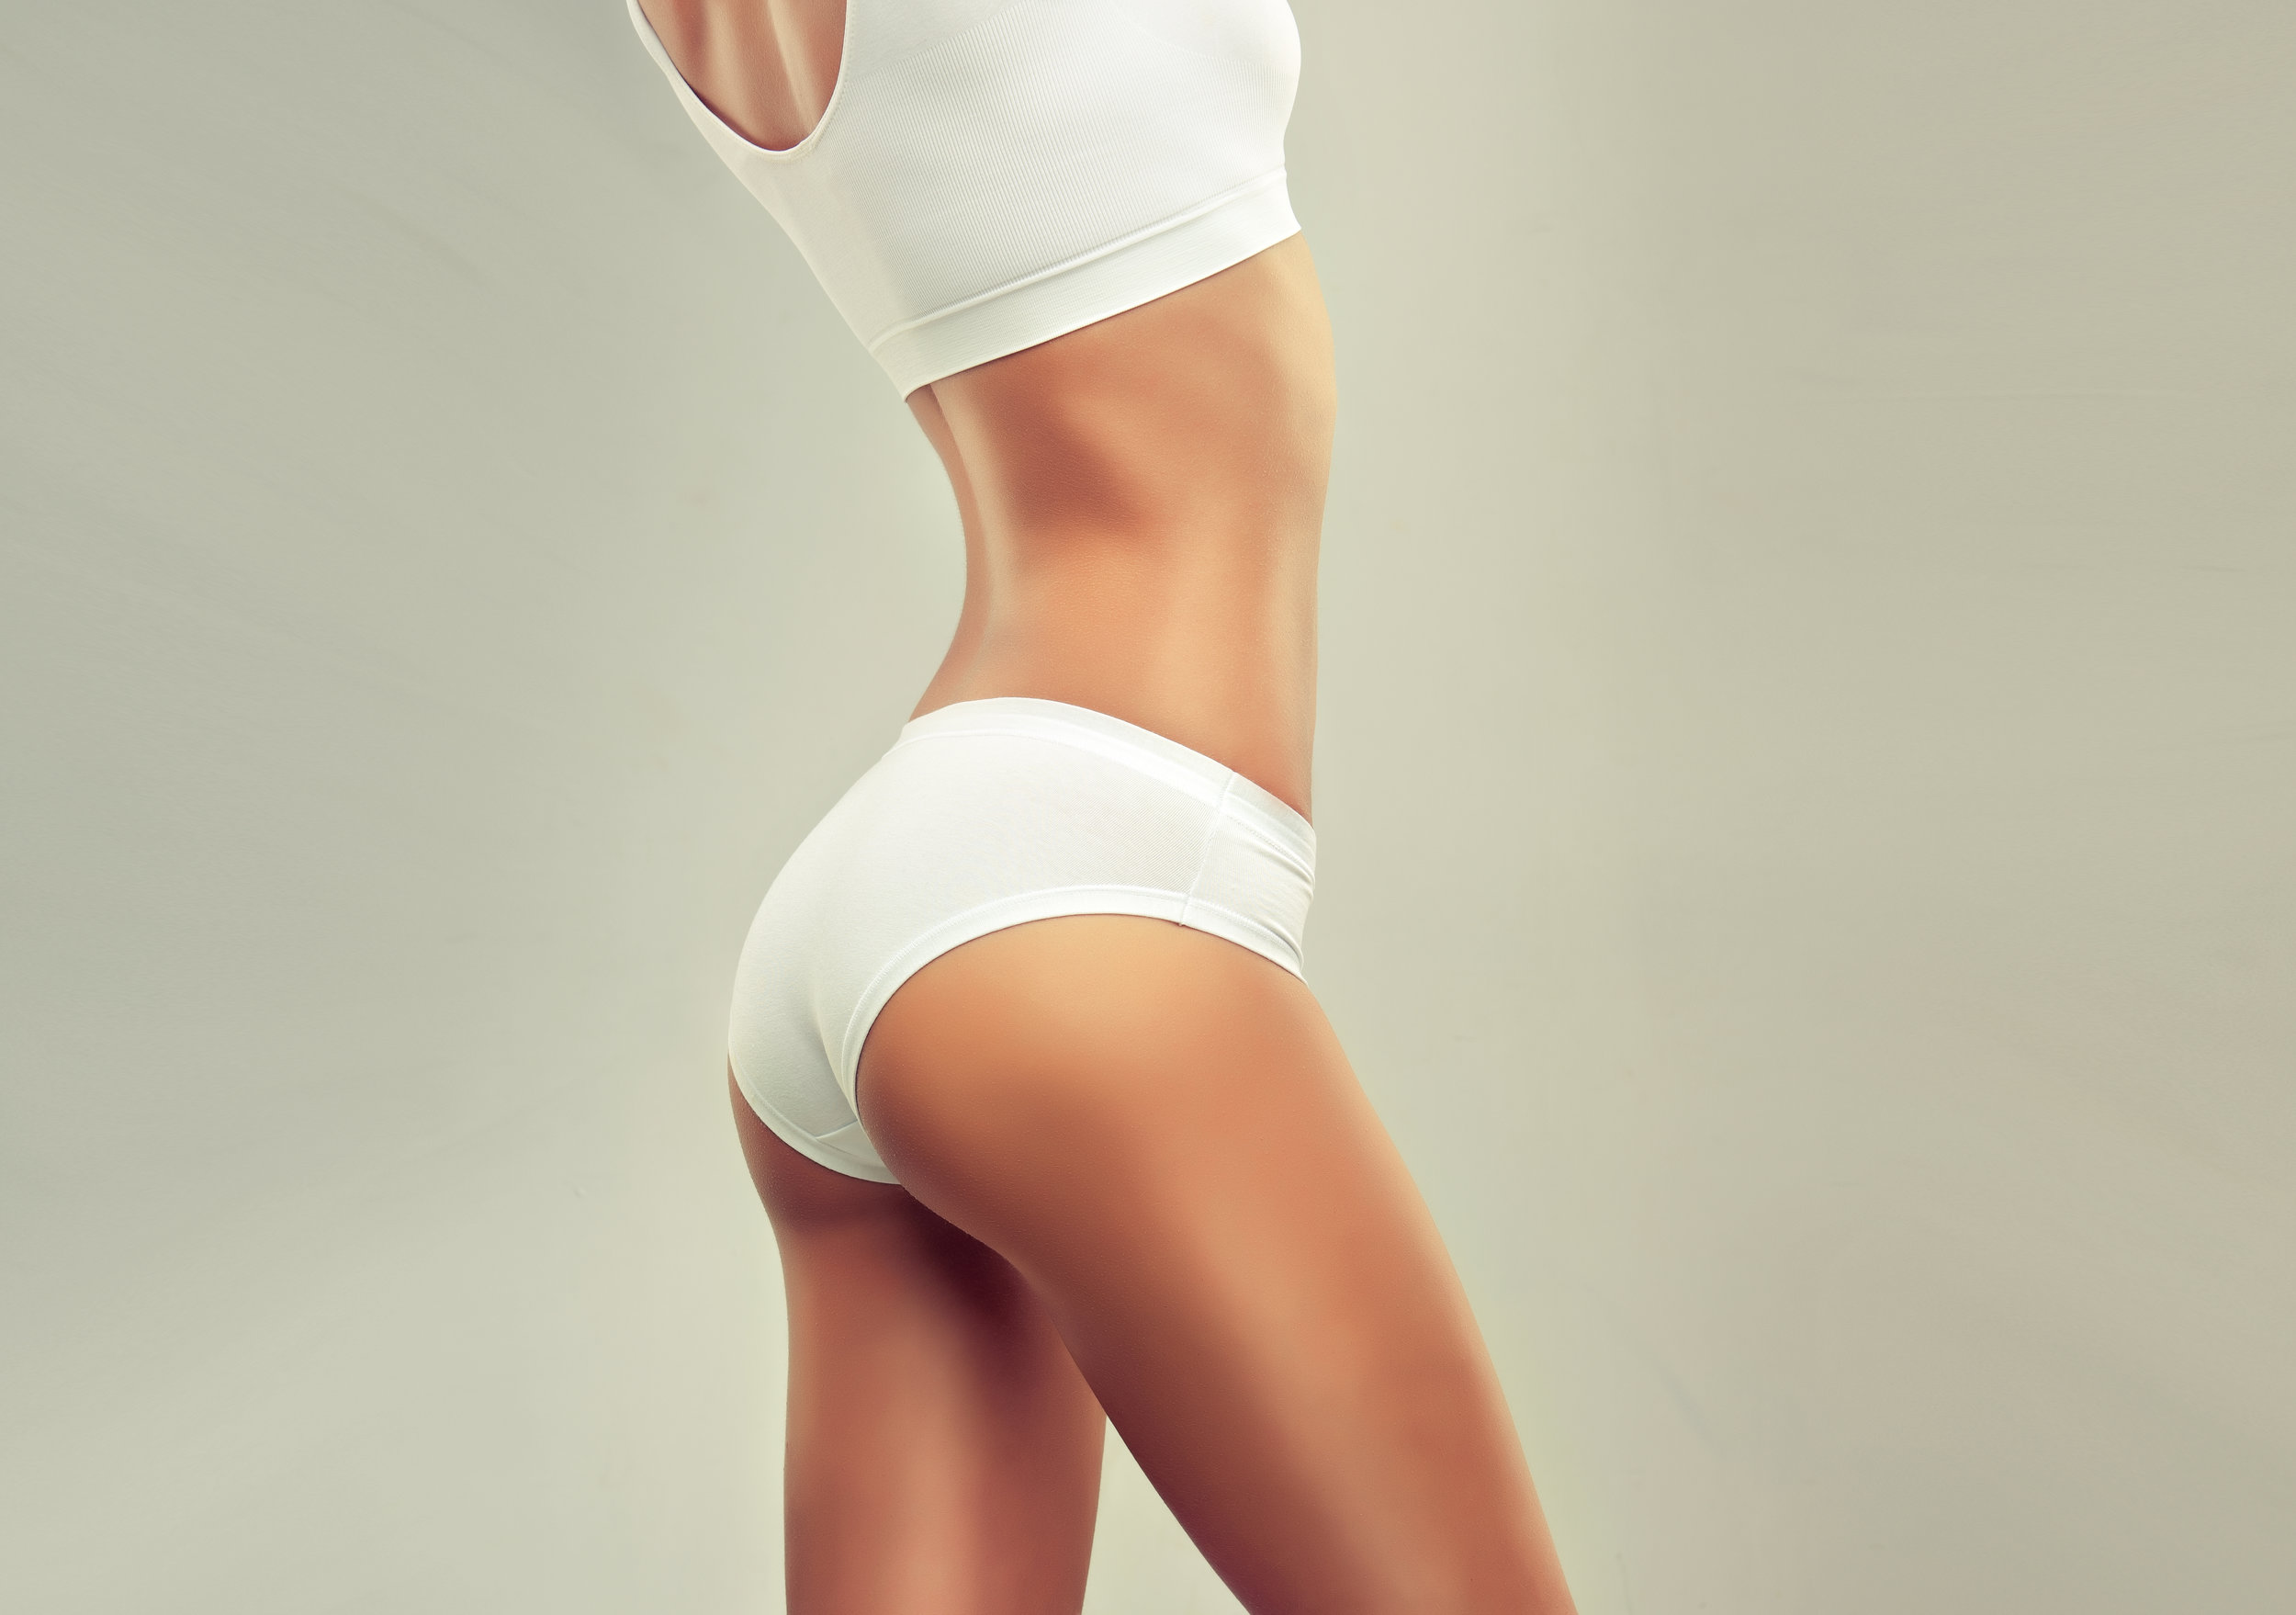 Remarkable Fat Reduction with CoolSculpting in Raleigh, NC